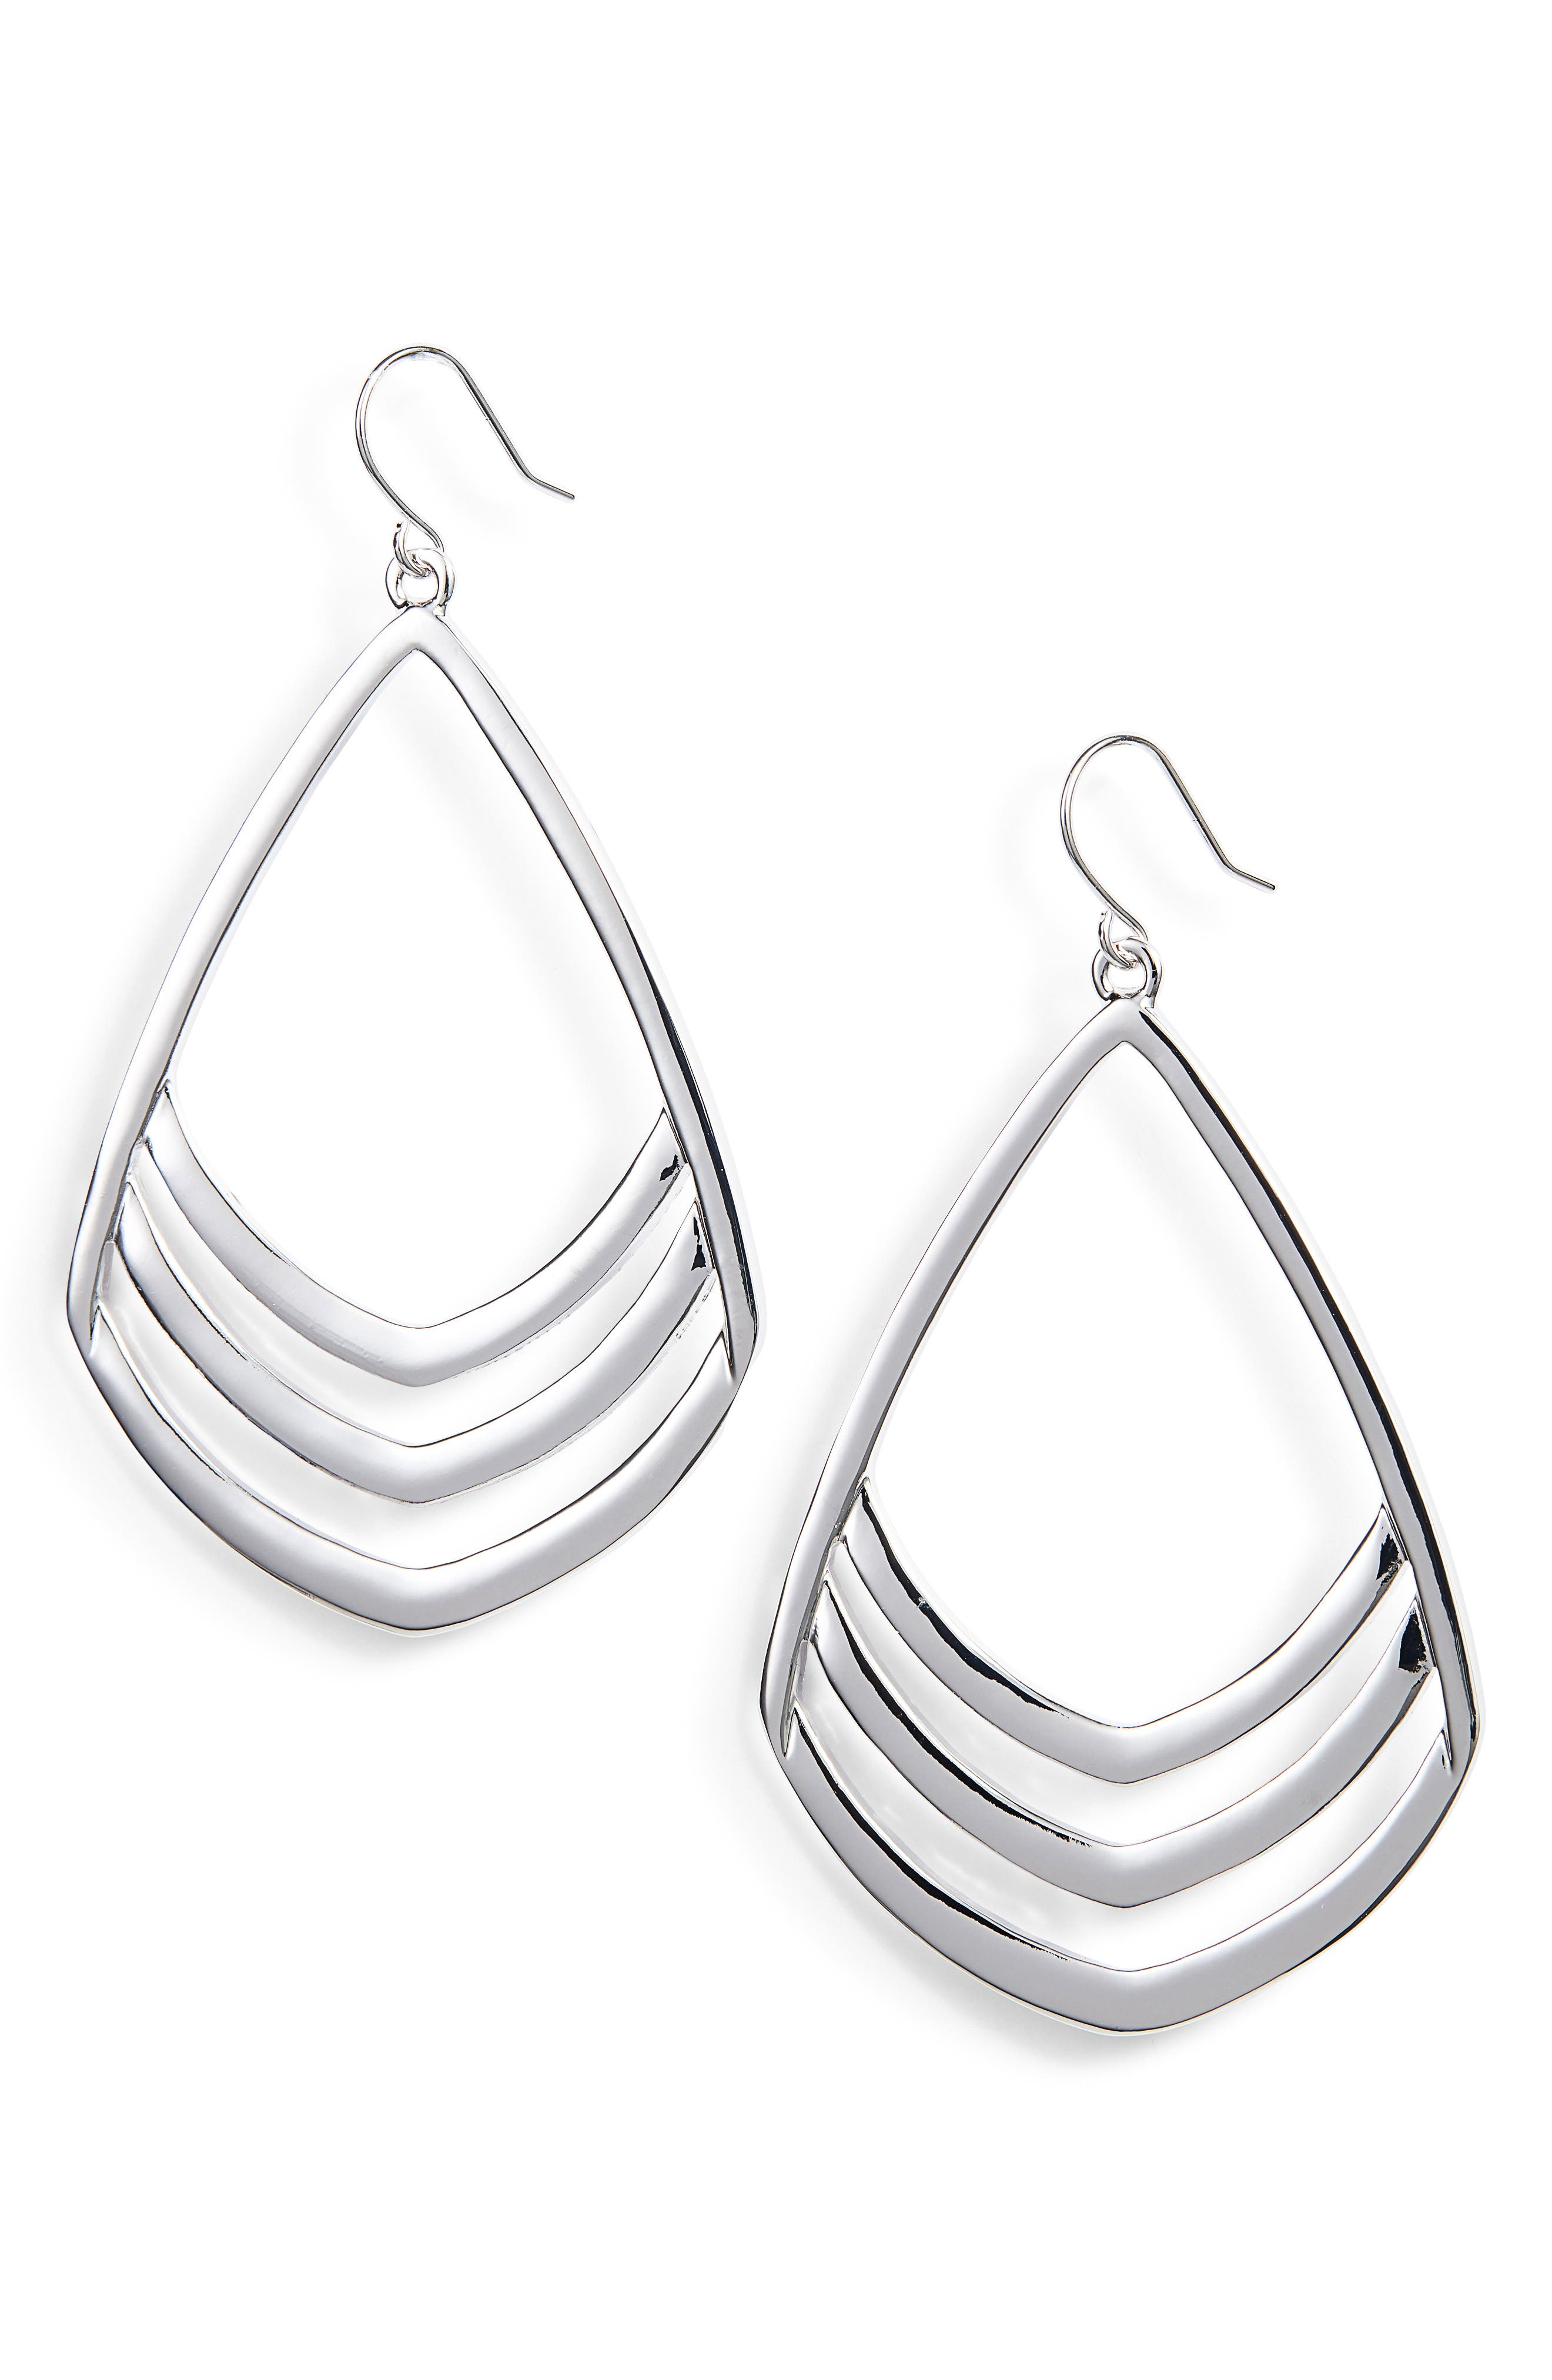 Pear Drop Earrings,                         Main,                         color, Silver